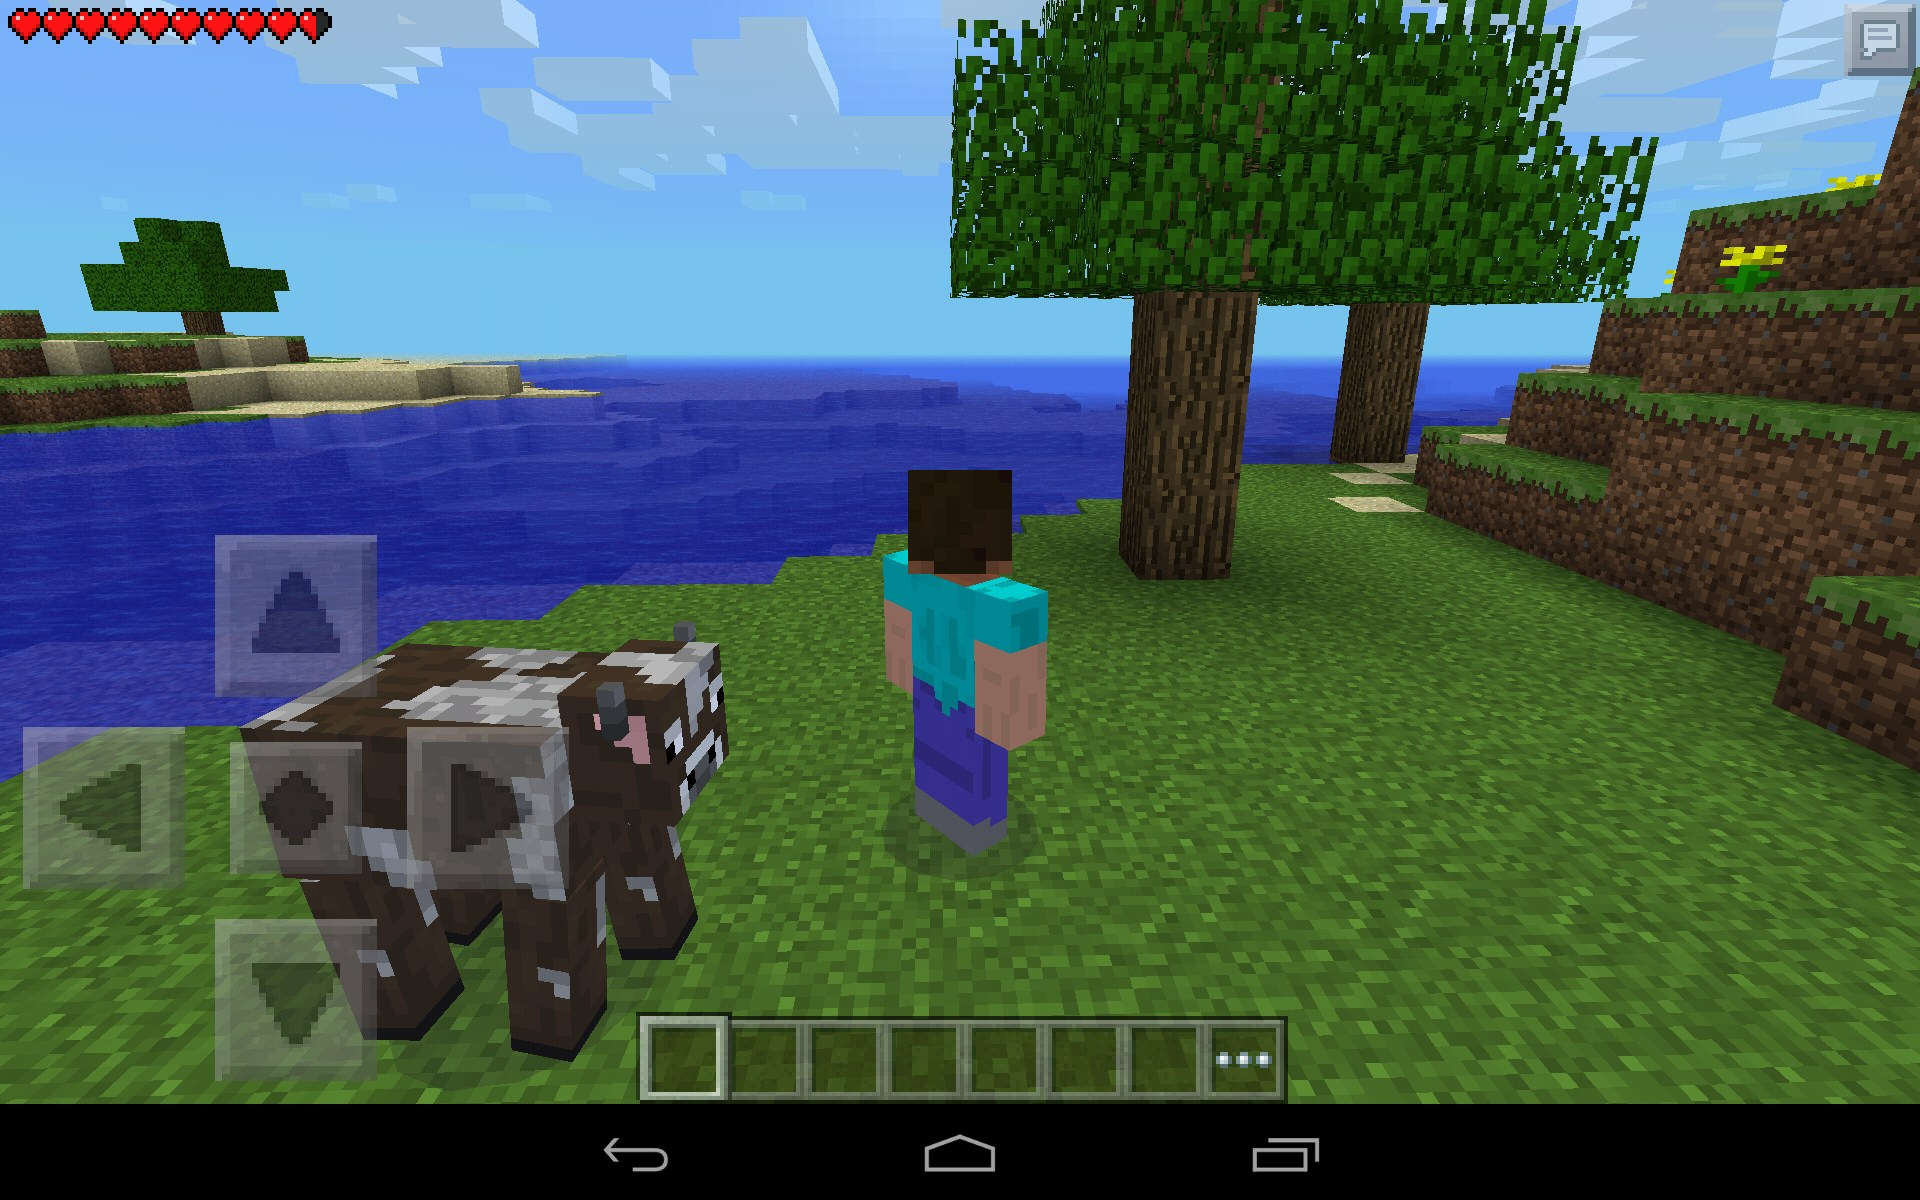 Can I Craft In Minecraft Pocket Edition